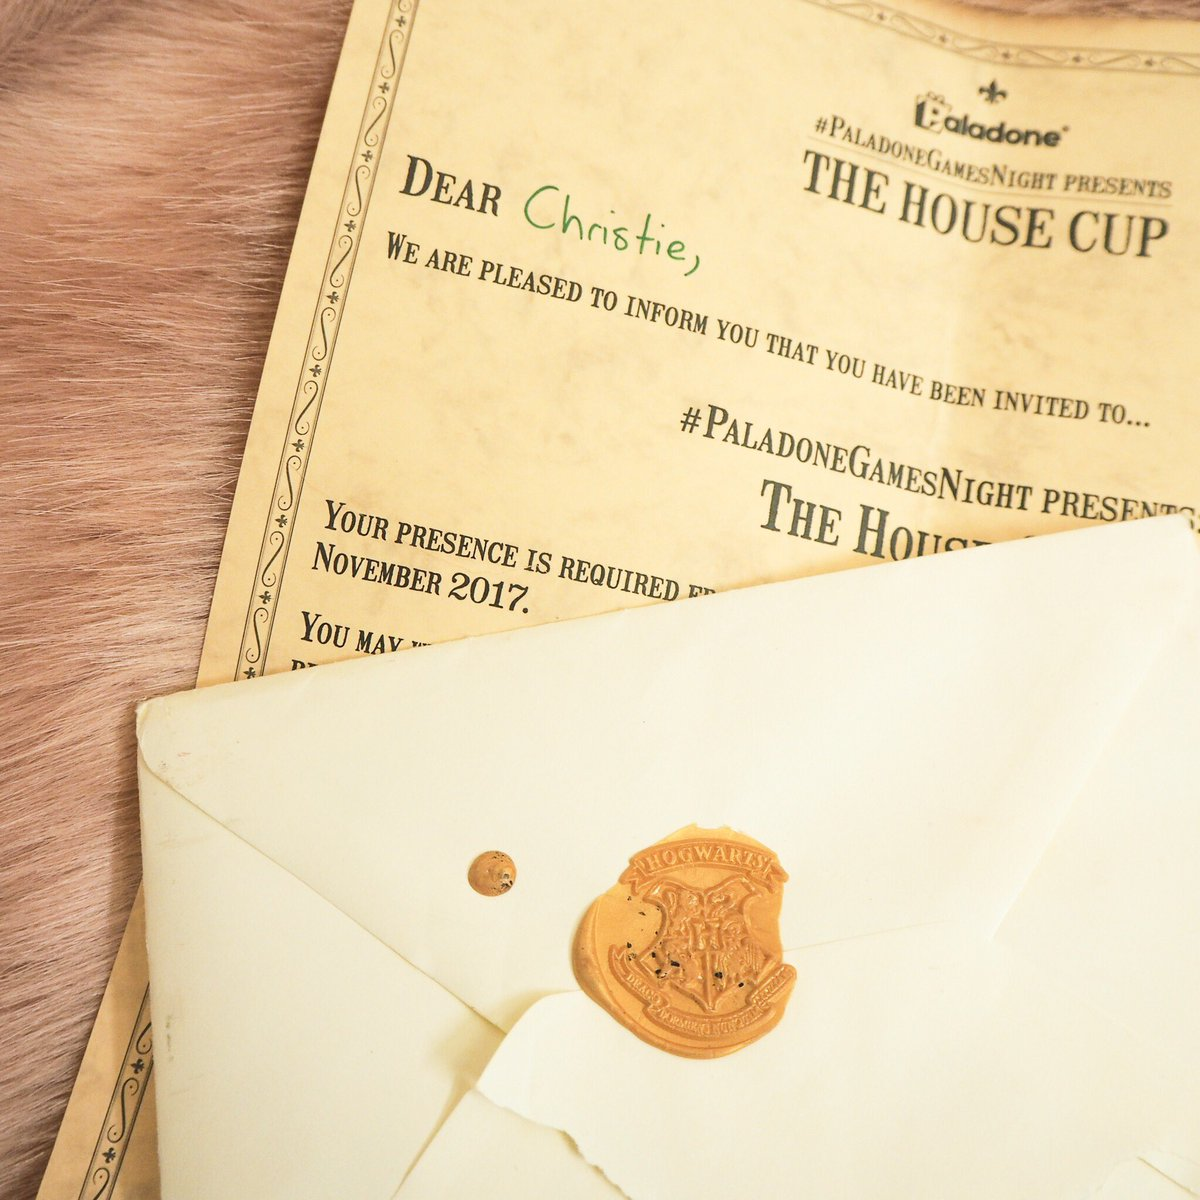 The House Cup (10)